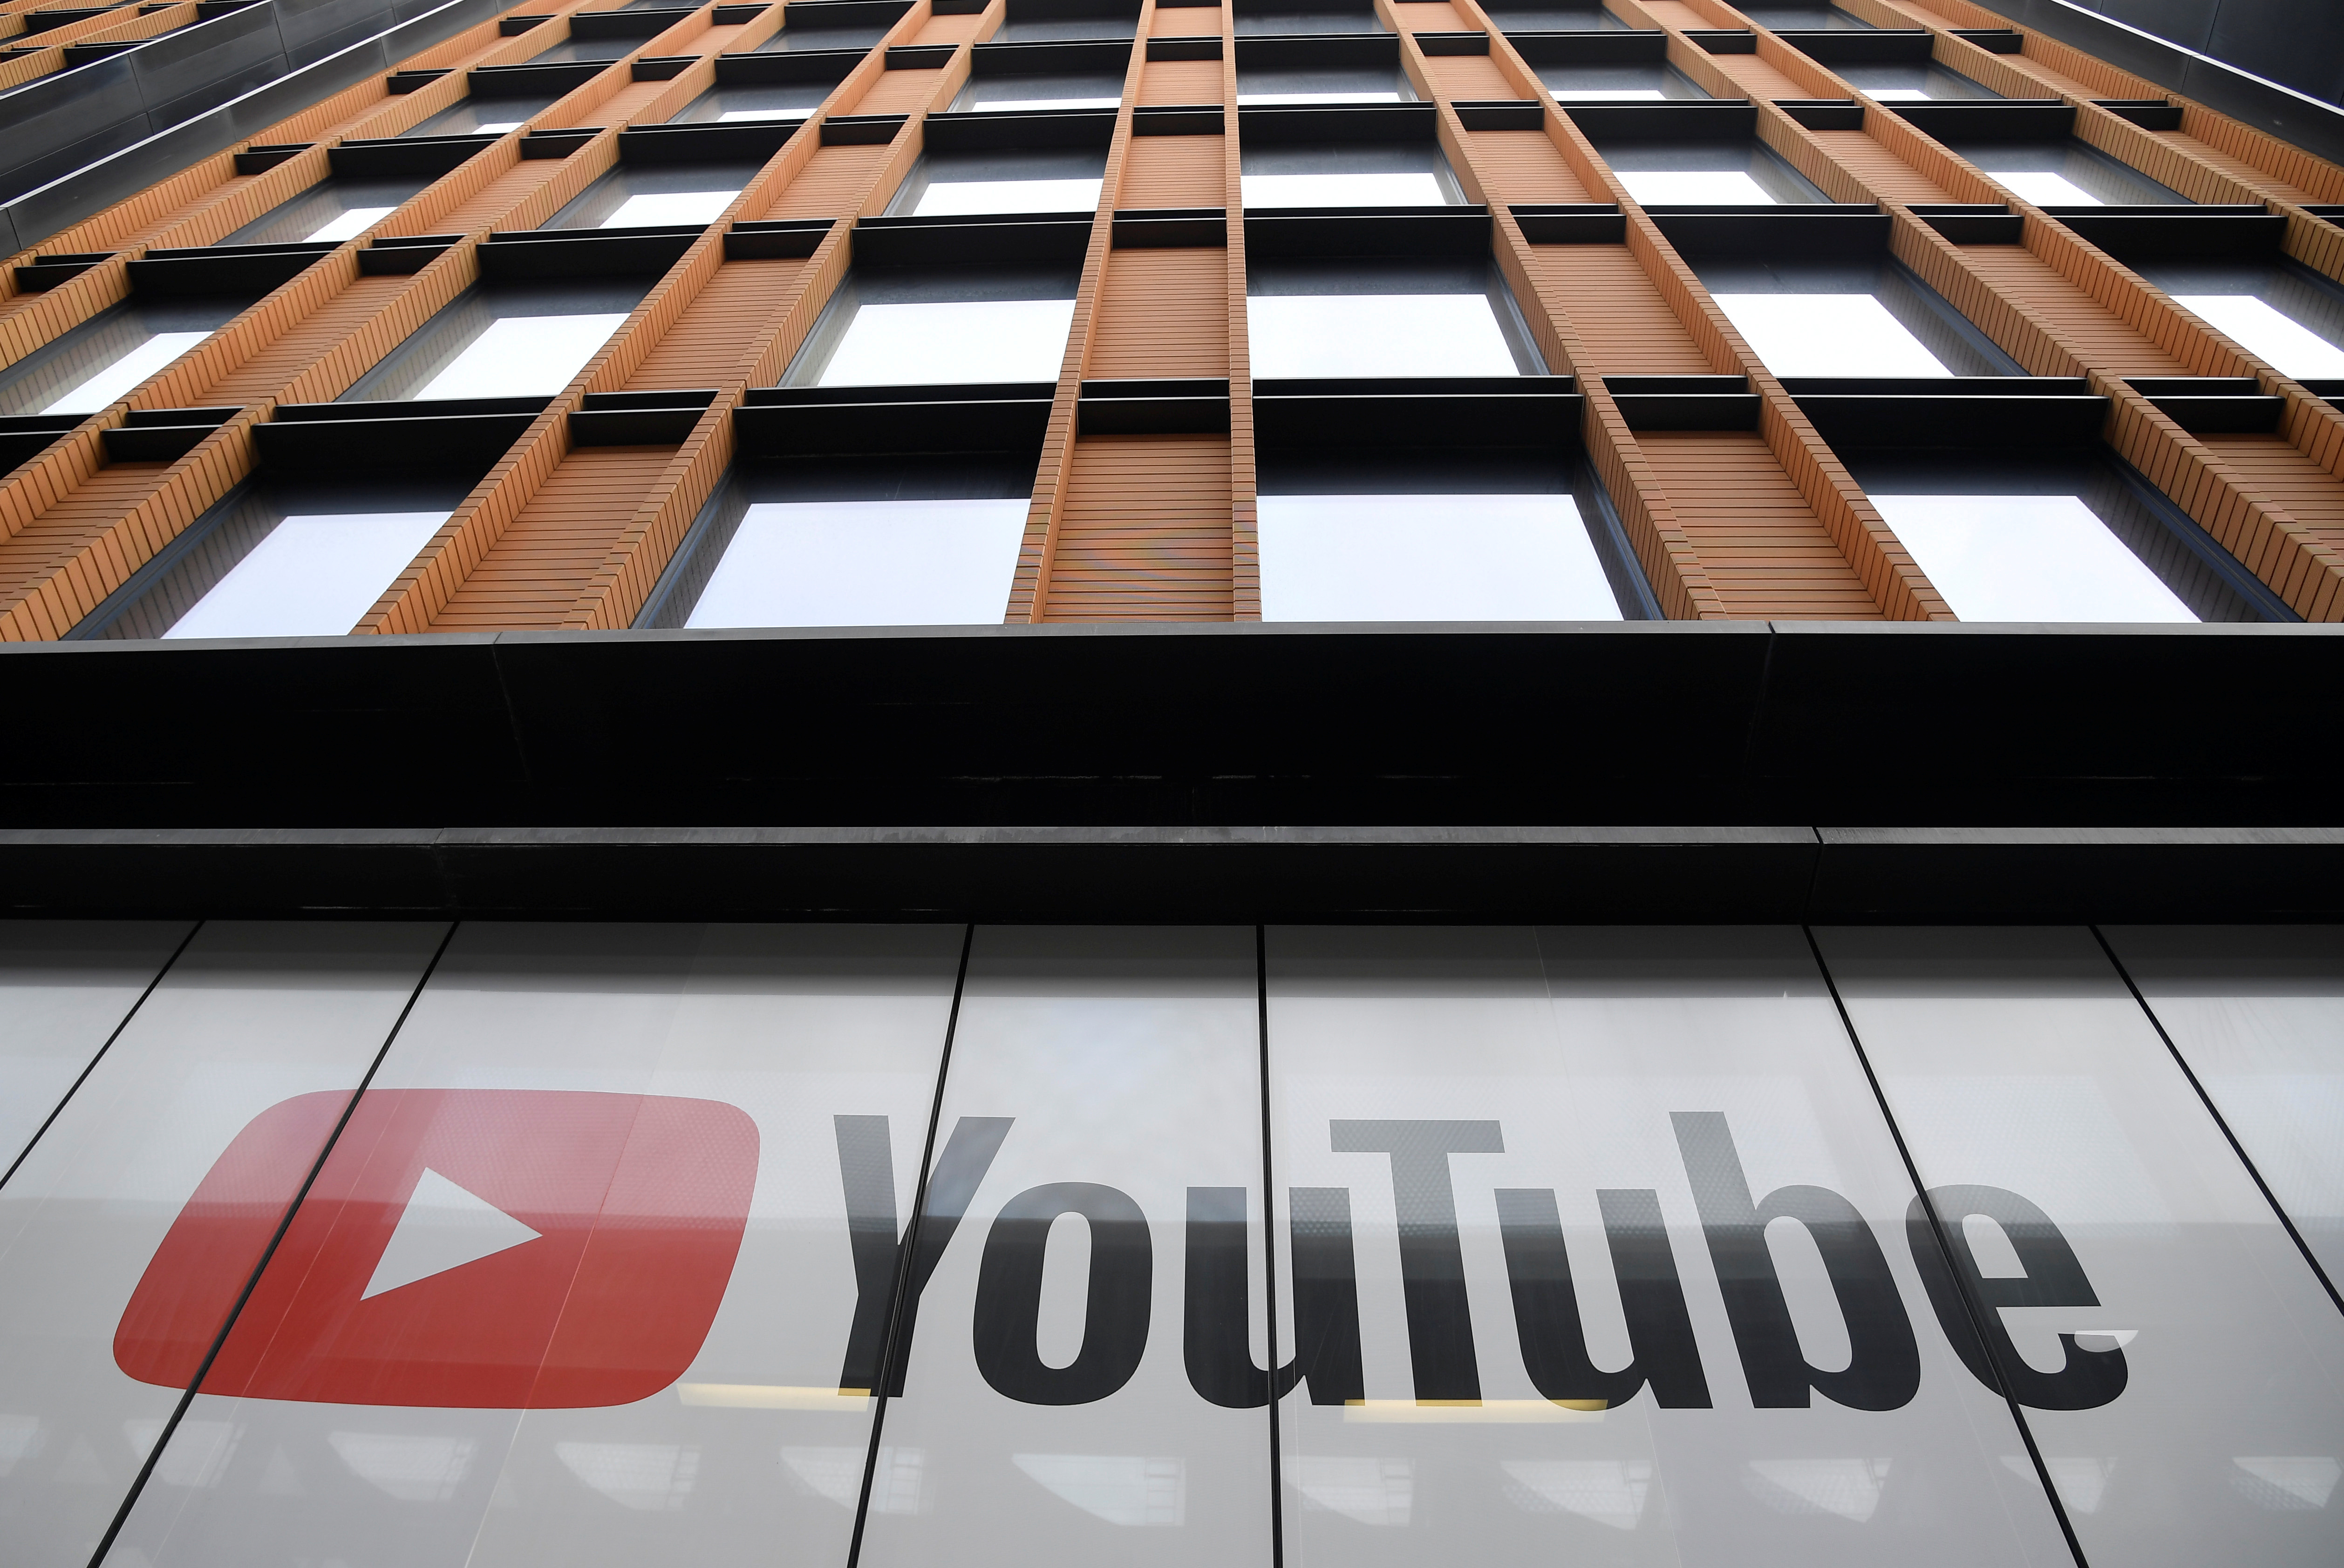 YouTube signage is seen at their offices in King's Cross, London, Britain, September 11, 2020. REUTERS/Toby Melville